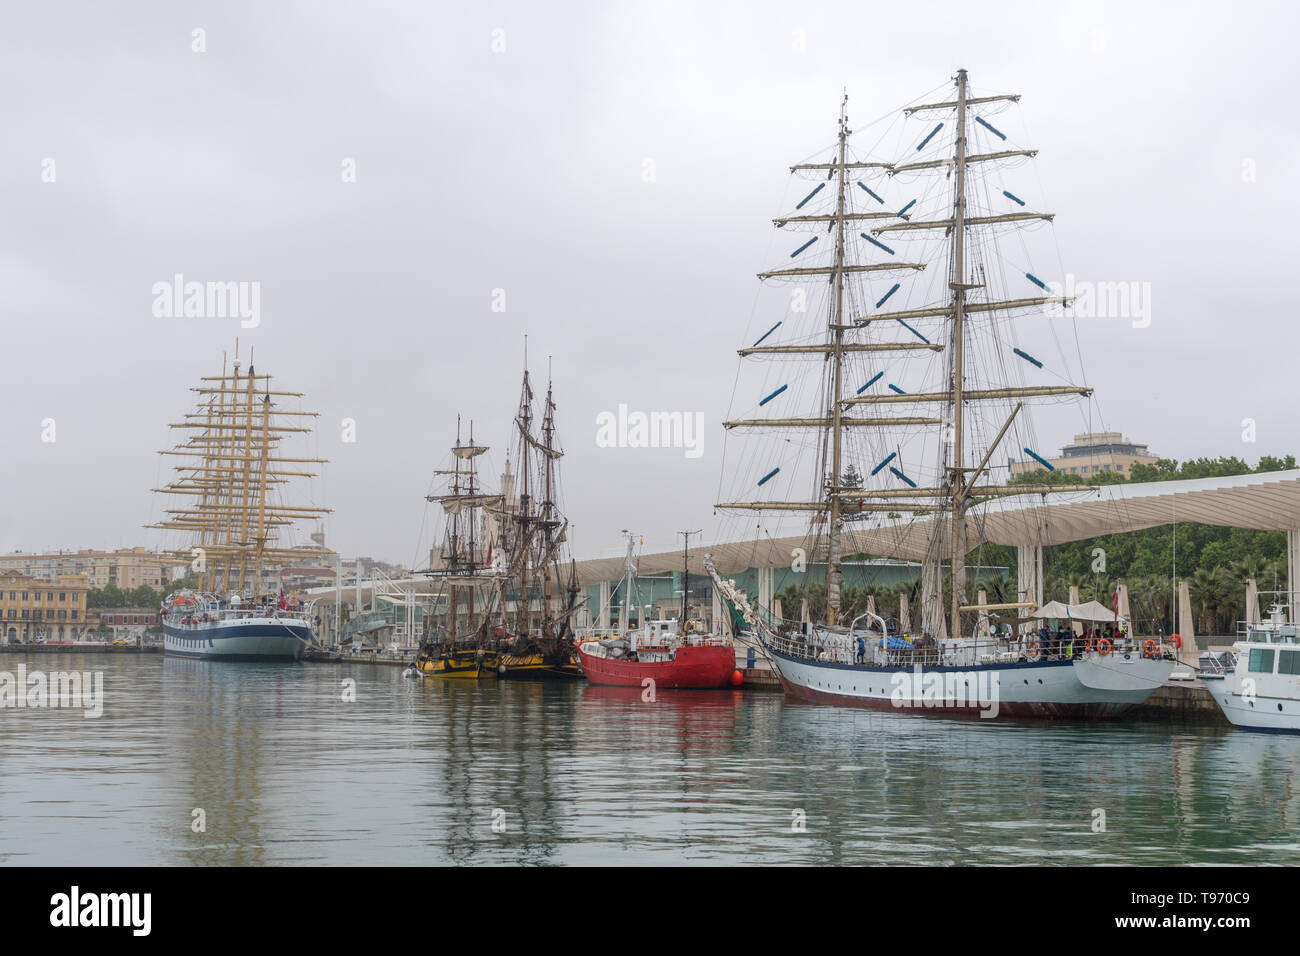 Multi-mast sailing ships at the pier in the port - Stock Image